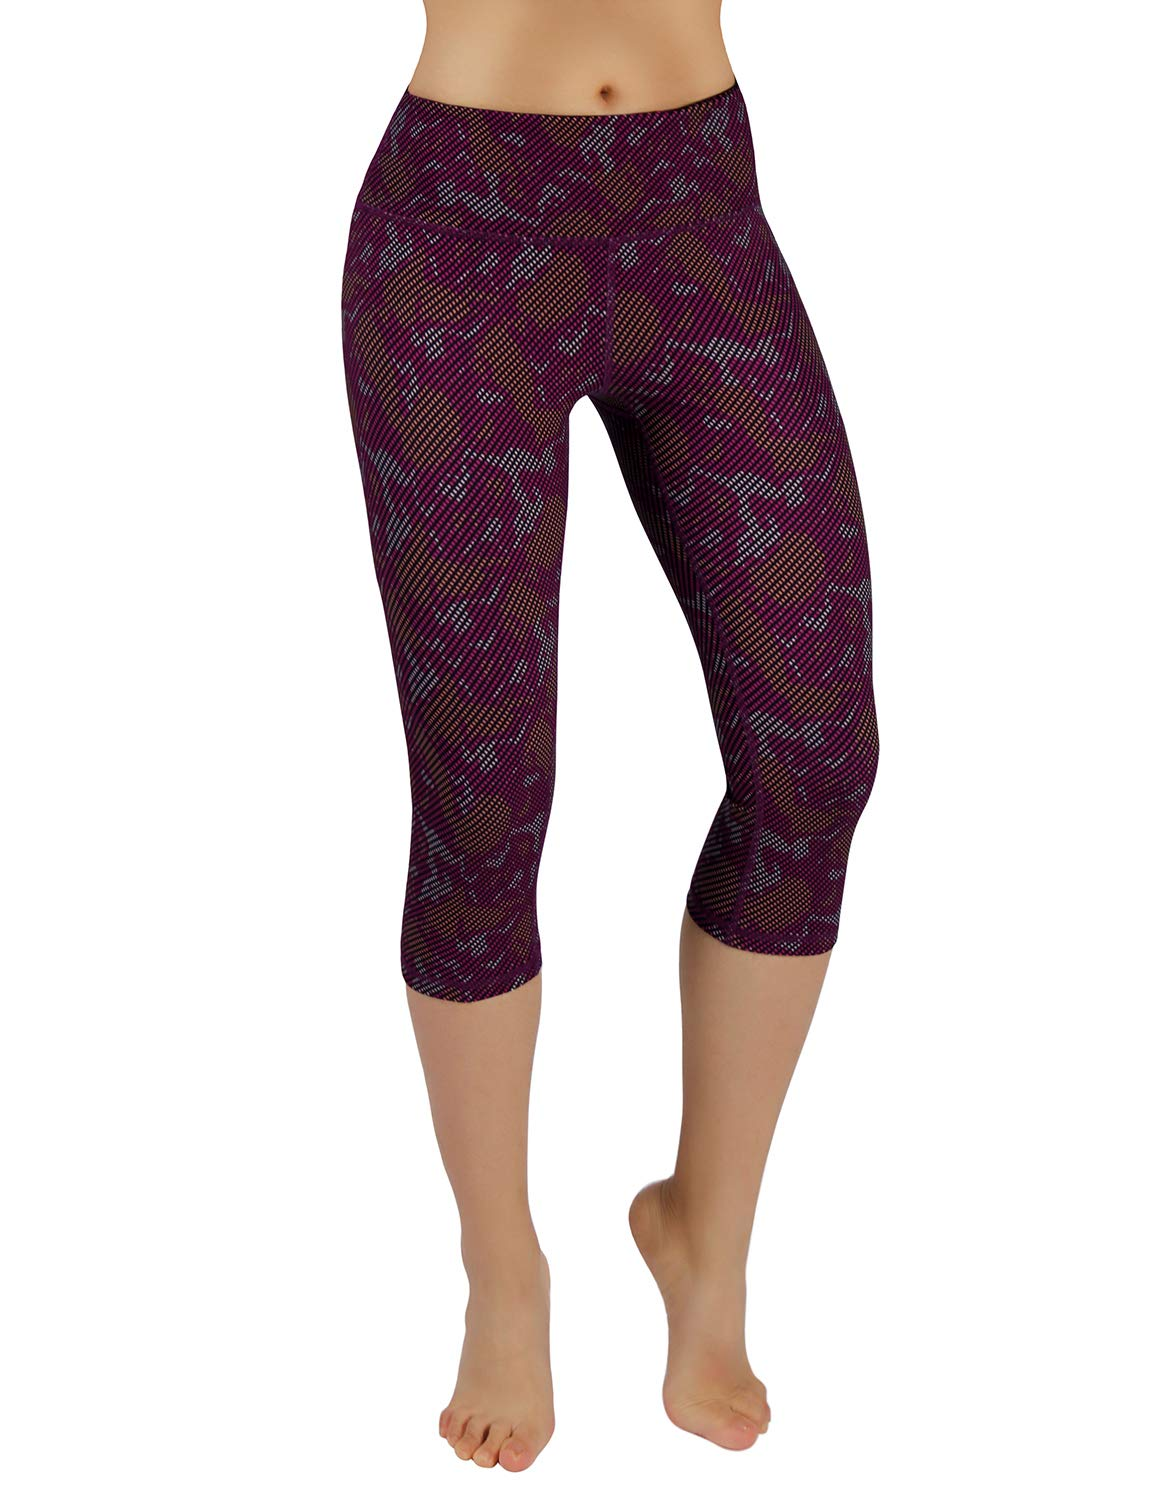 Printcapris926-camouflage Medium ODODOS High Waist Out Pocket Printed Yoga Capris Pants Tummy Control Workout Running 4 Way Stretch Yoga Capris Leggings